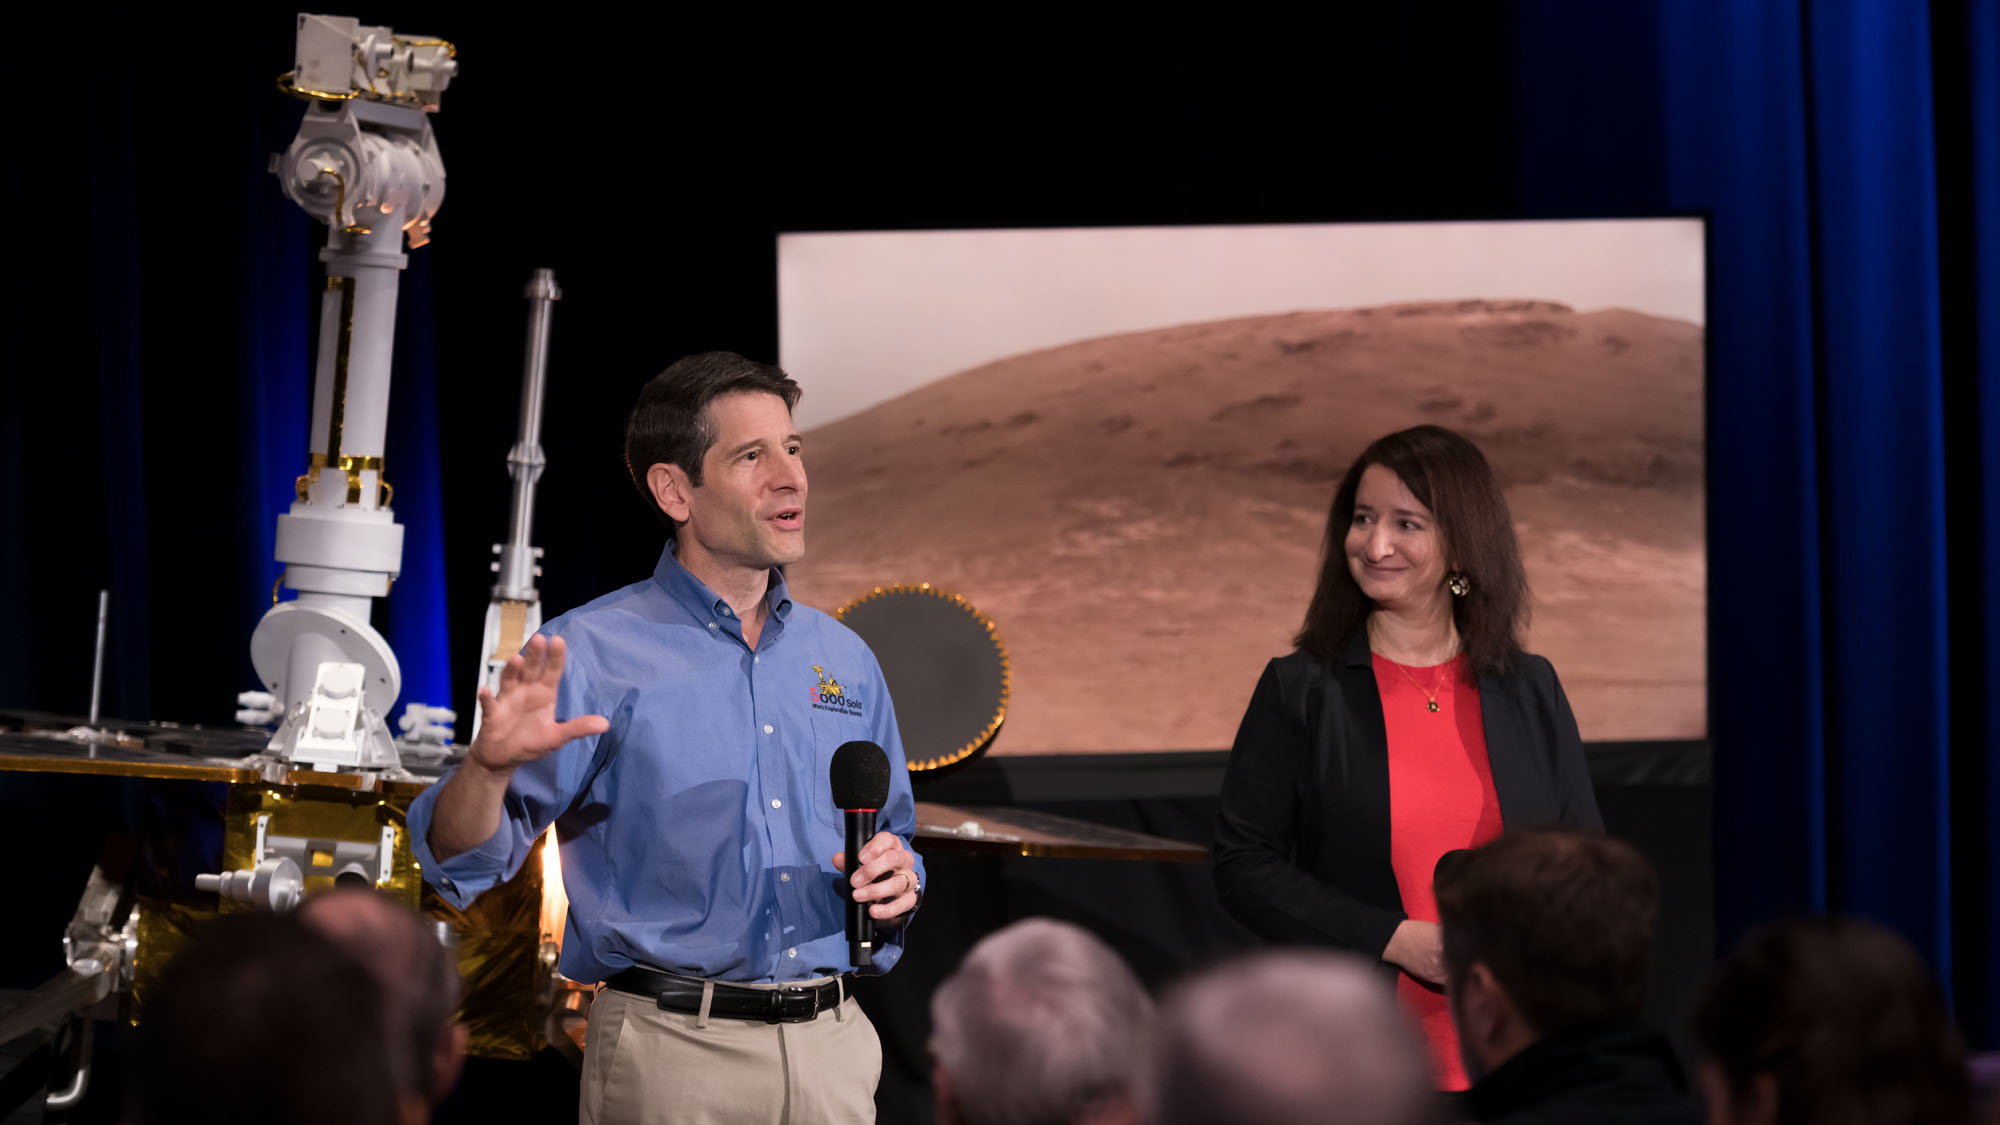 With a model of NASA's Opportunity rover behind him, John Callas, project manager of the Spirit and Opportunity Mars rovers, speaks about the rovers' achievements at the agency's Jet Propulsion Laboratory in Pasadena, California. Deputy Project Scientist Abigail Fraeman (right) looks on.